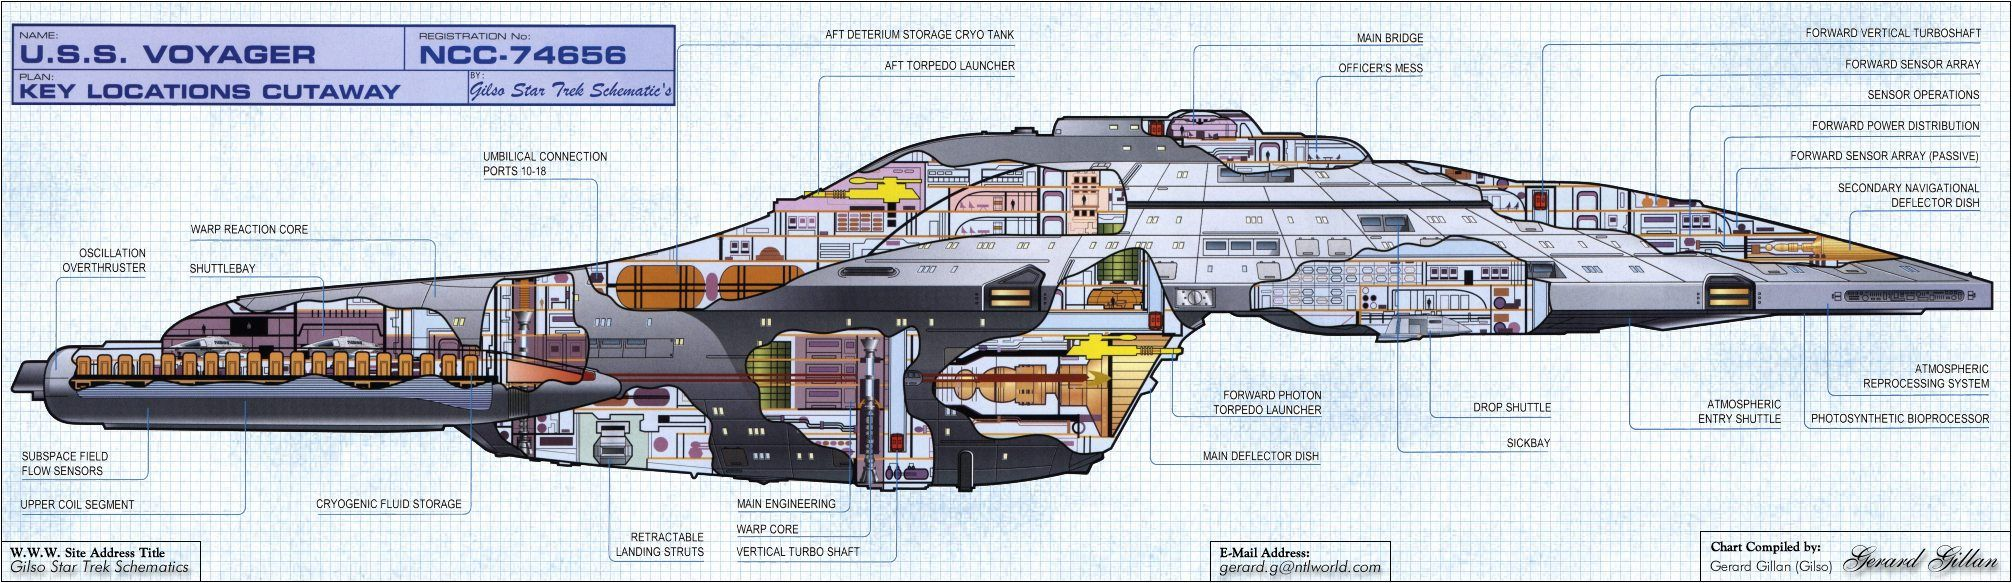 U.S.S. Voyager NCC-74656 | Star trek | Pinterest | Star trek, Trek on